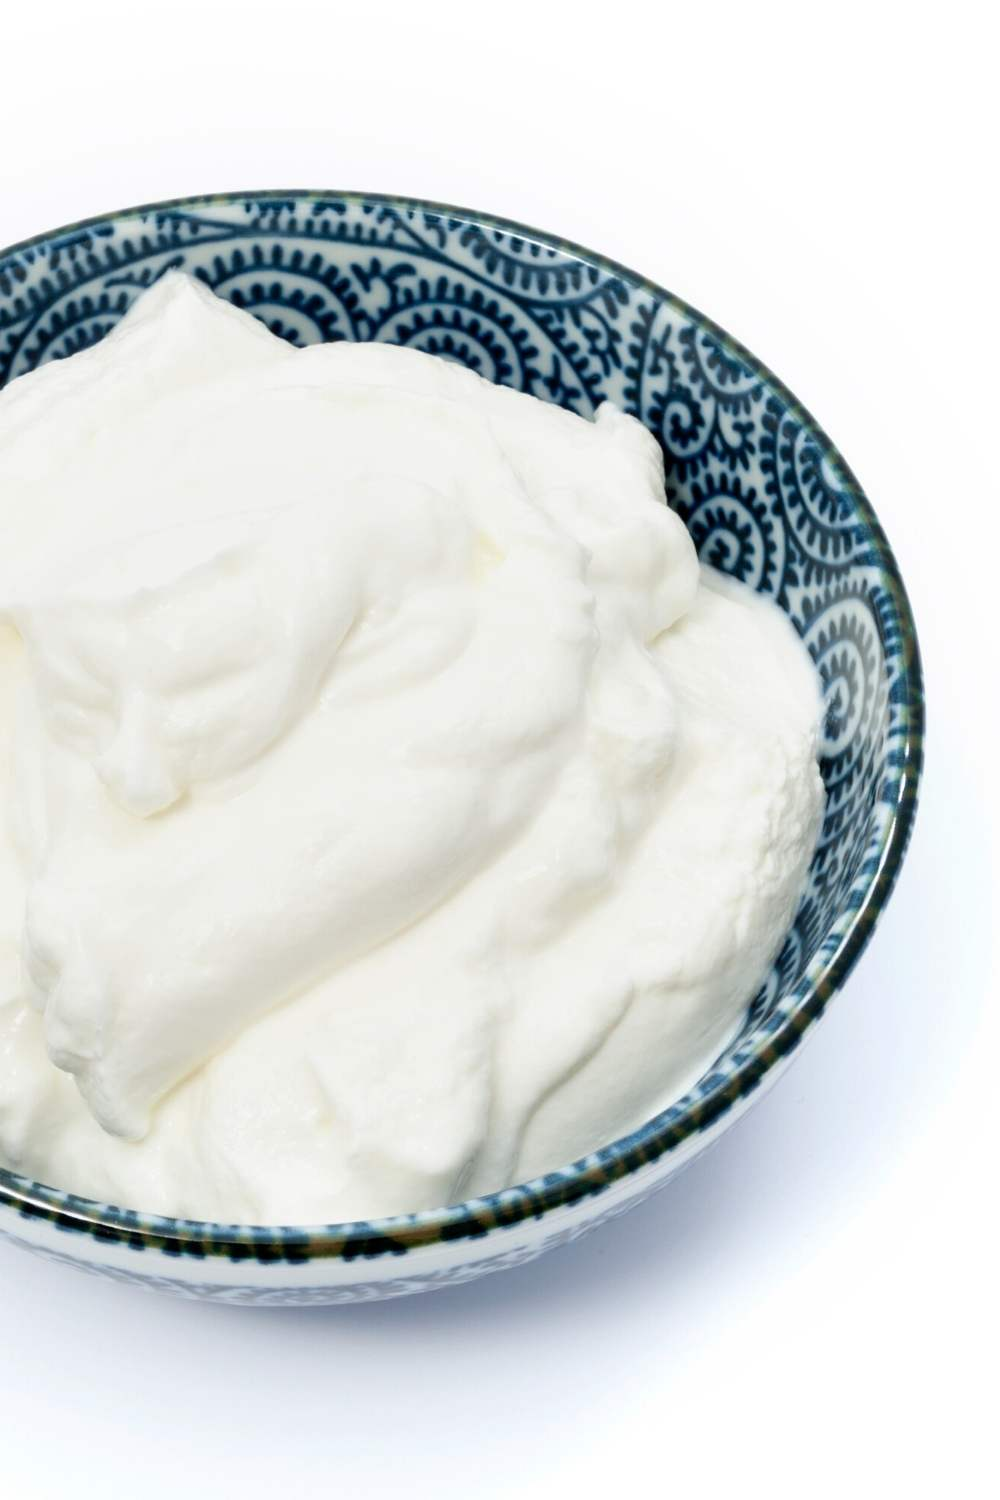 Plain Yogurt plentiful of probiotics will serve as your main liquid source for your Superfood Smoothie Recipe